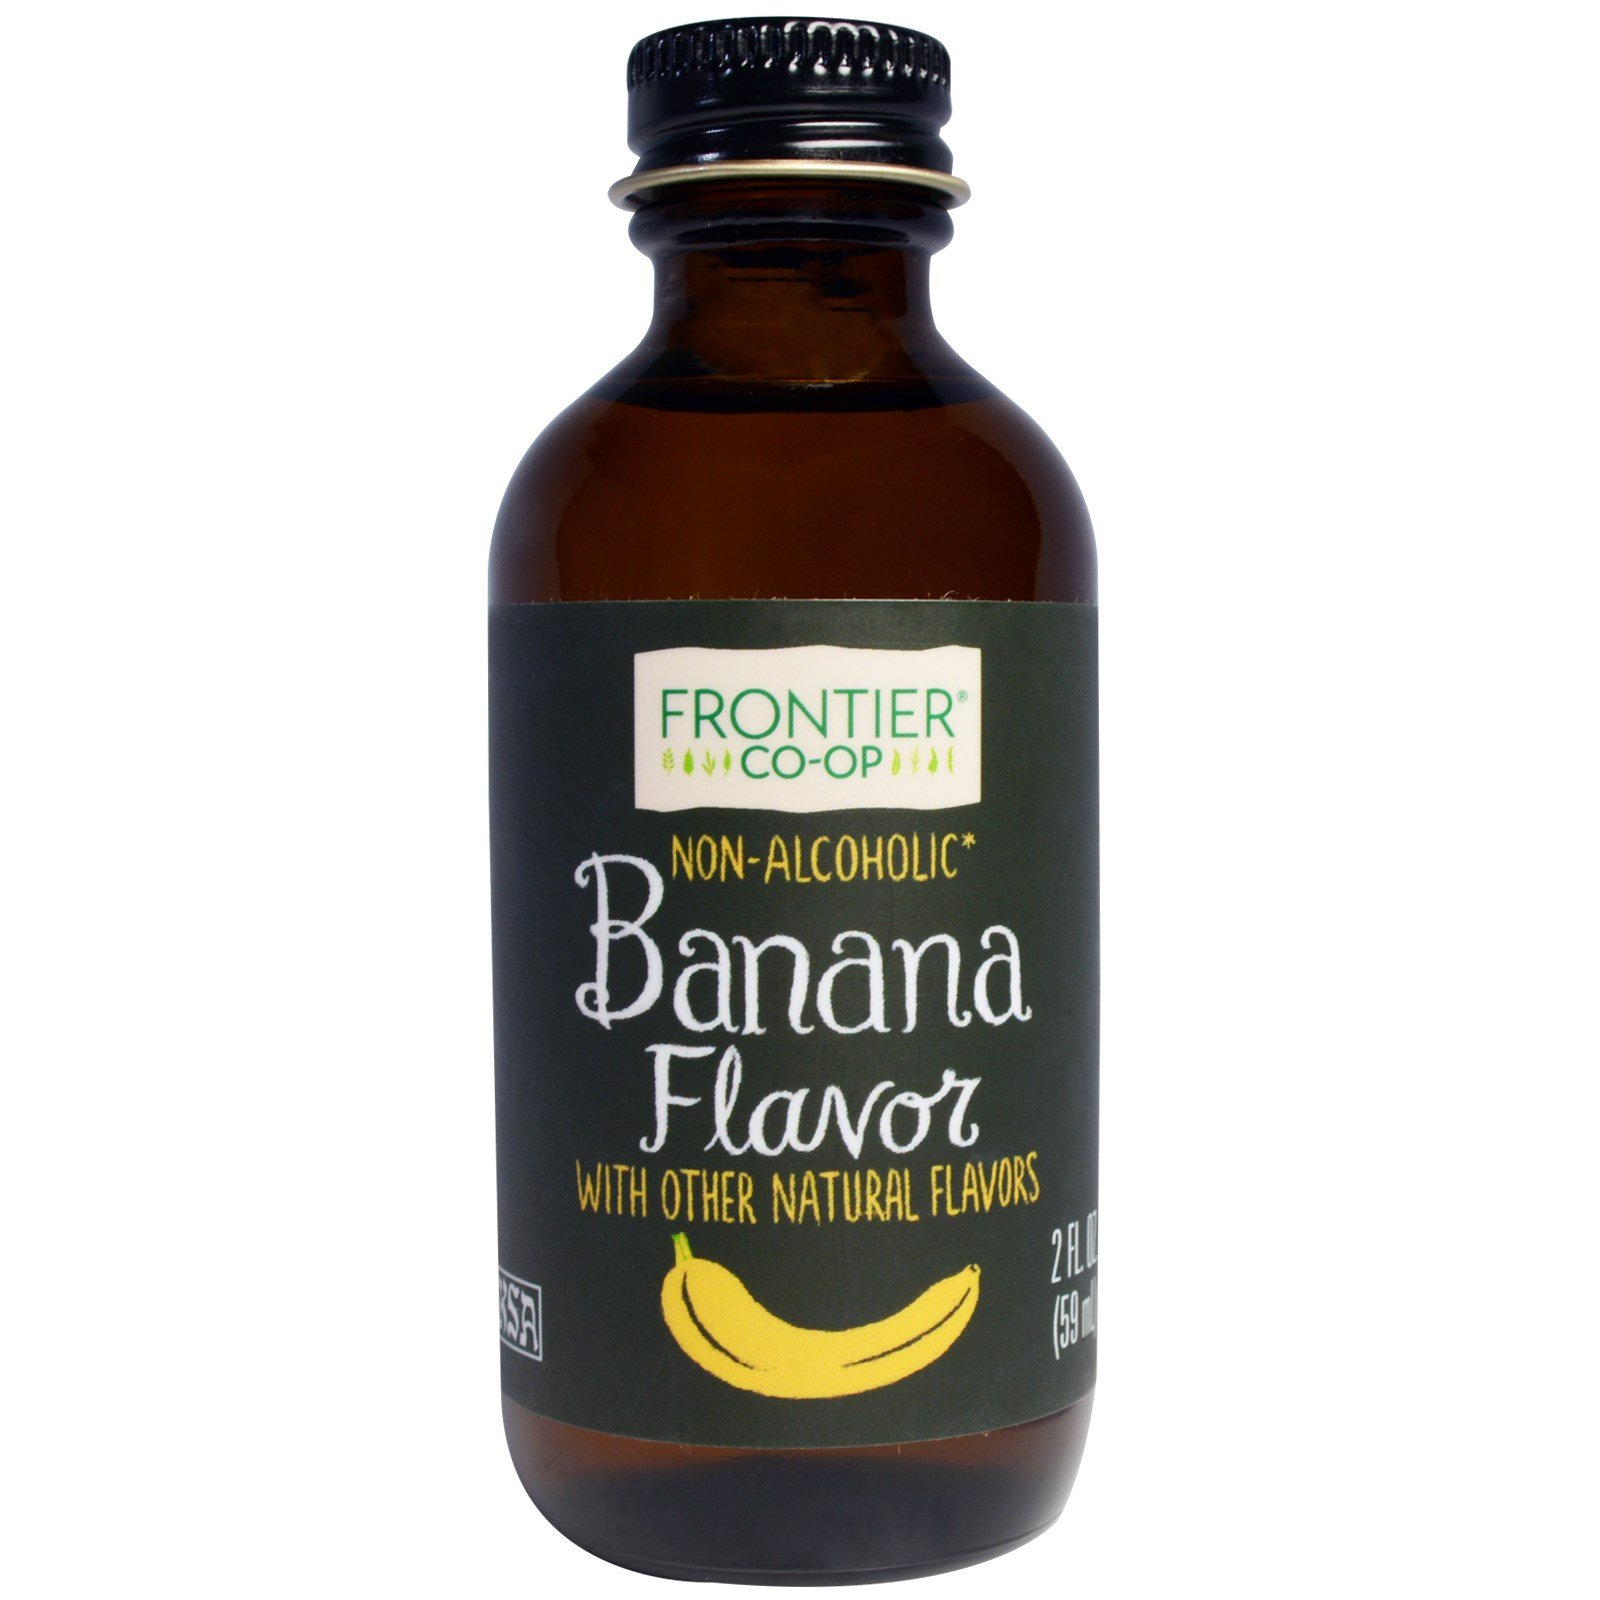 Frontier Natural Products, Banana Flavor, Non-Alcoholic, 2 fl oz (59 ml) - 2pc